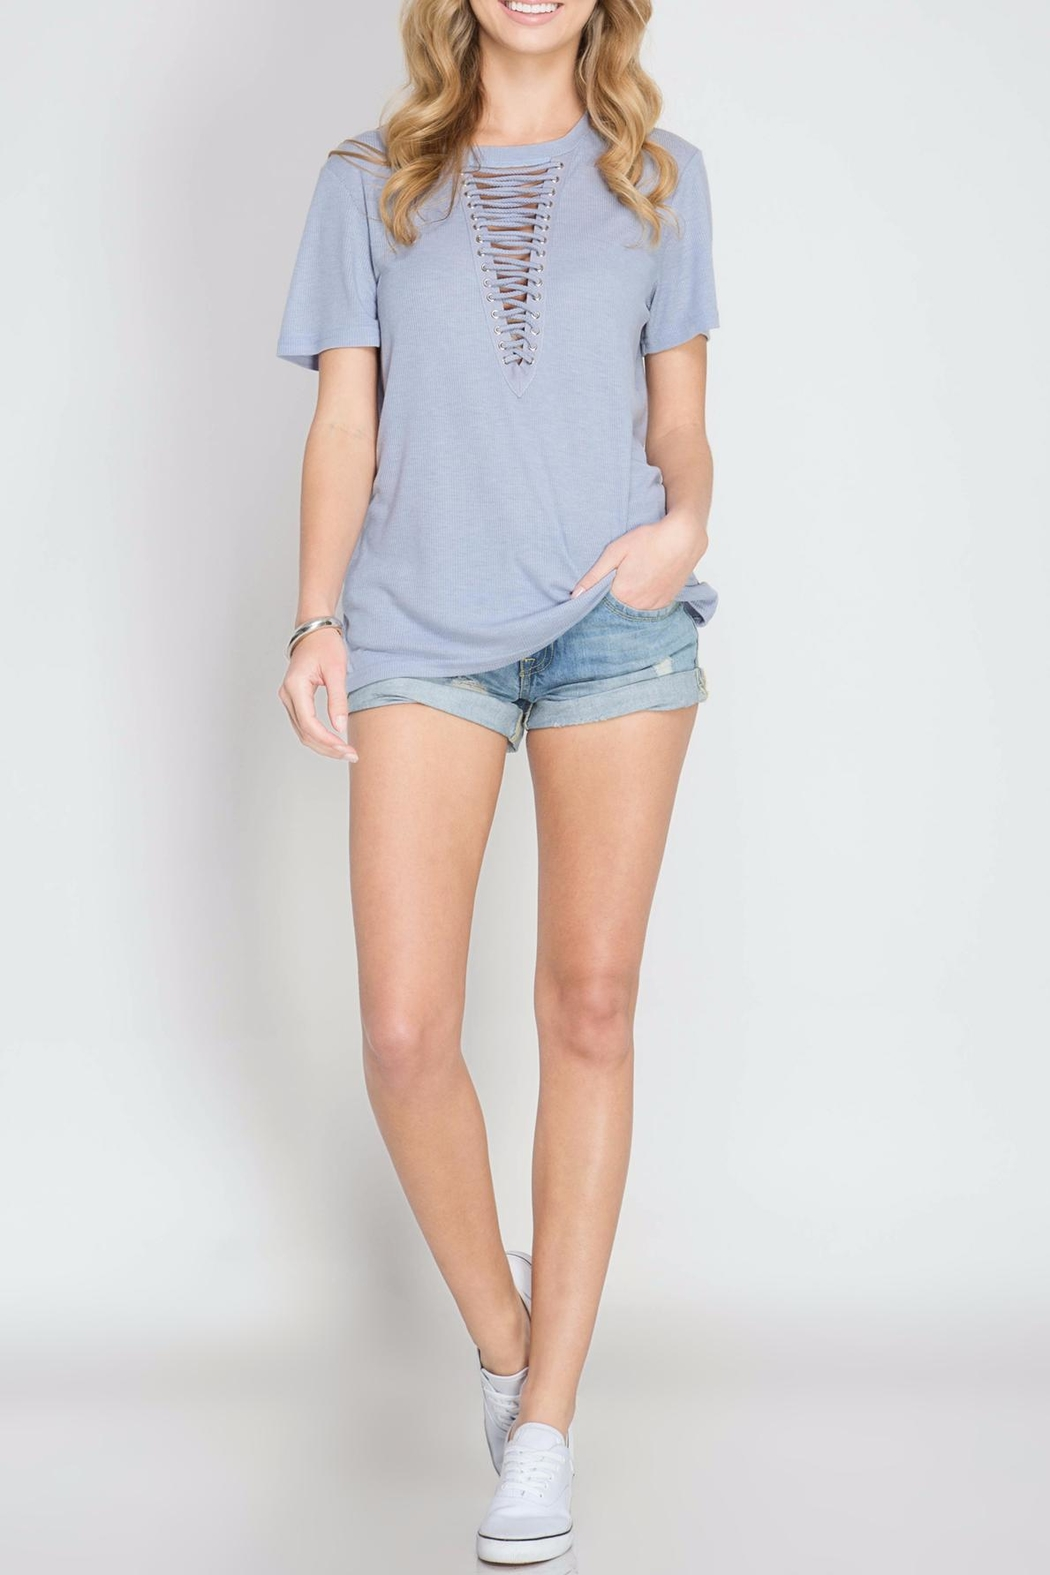 She + Sky Lace Up Periwinkle Top - Main Image